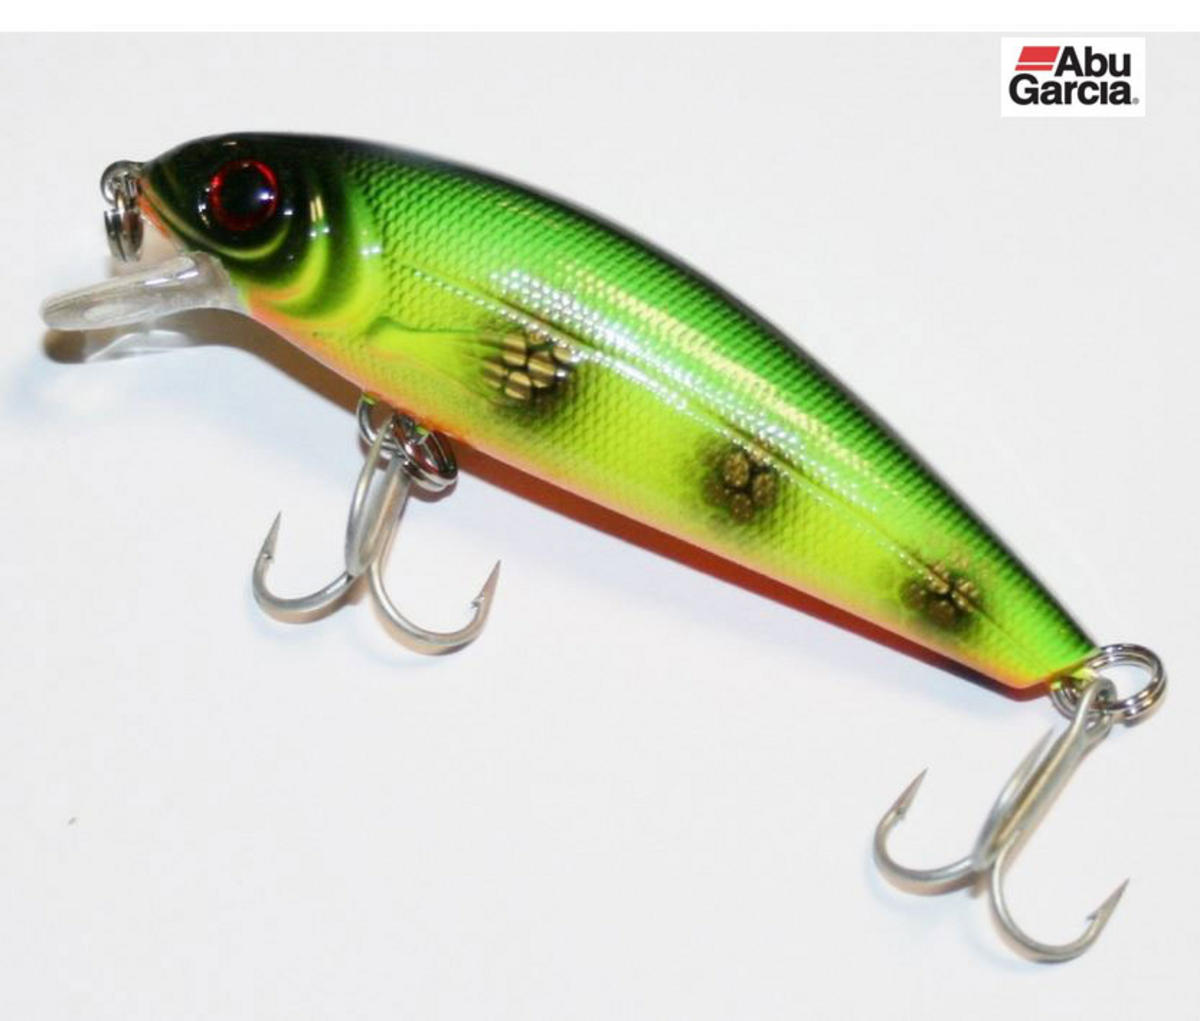 ABU GARCIA TORMENTOR LURE FLOATING - GP 70mm/9g